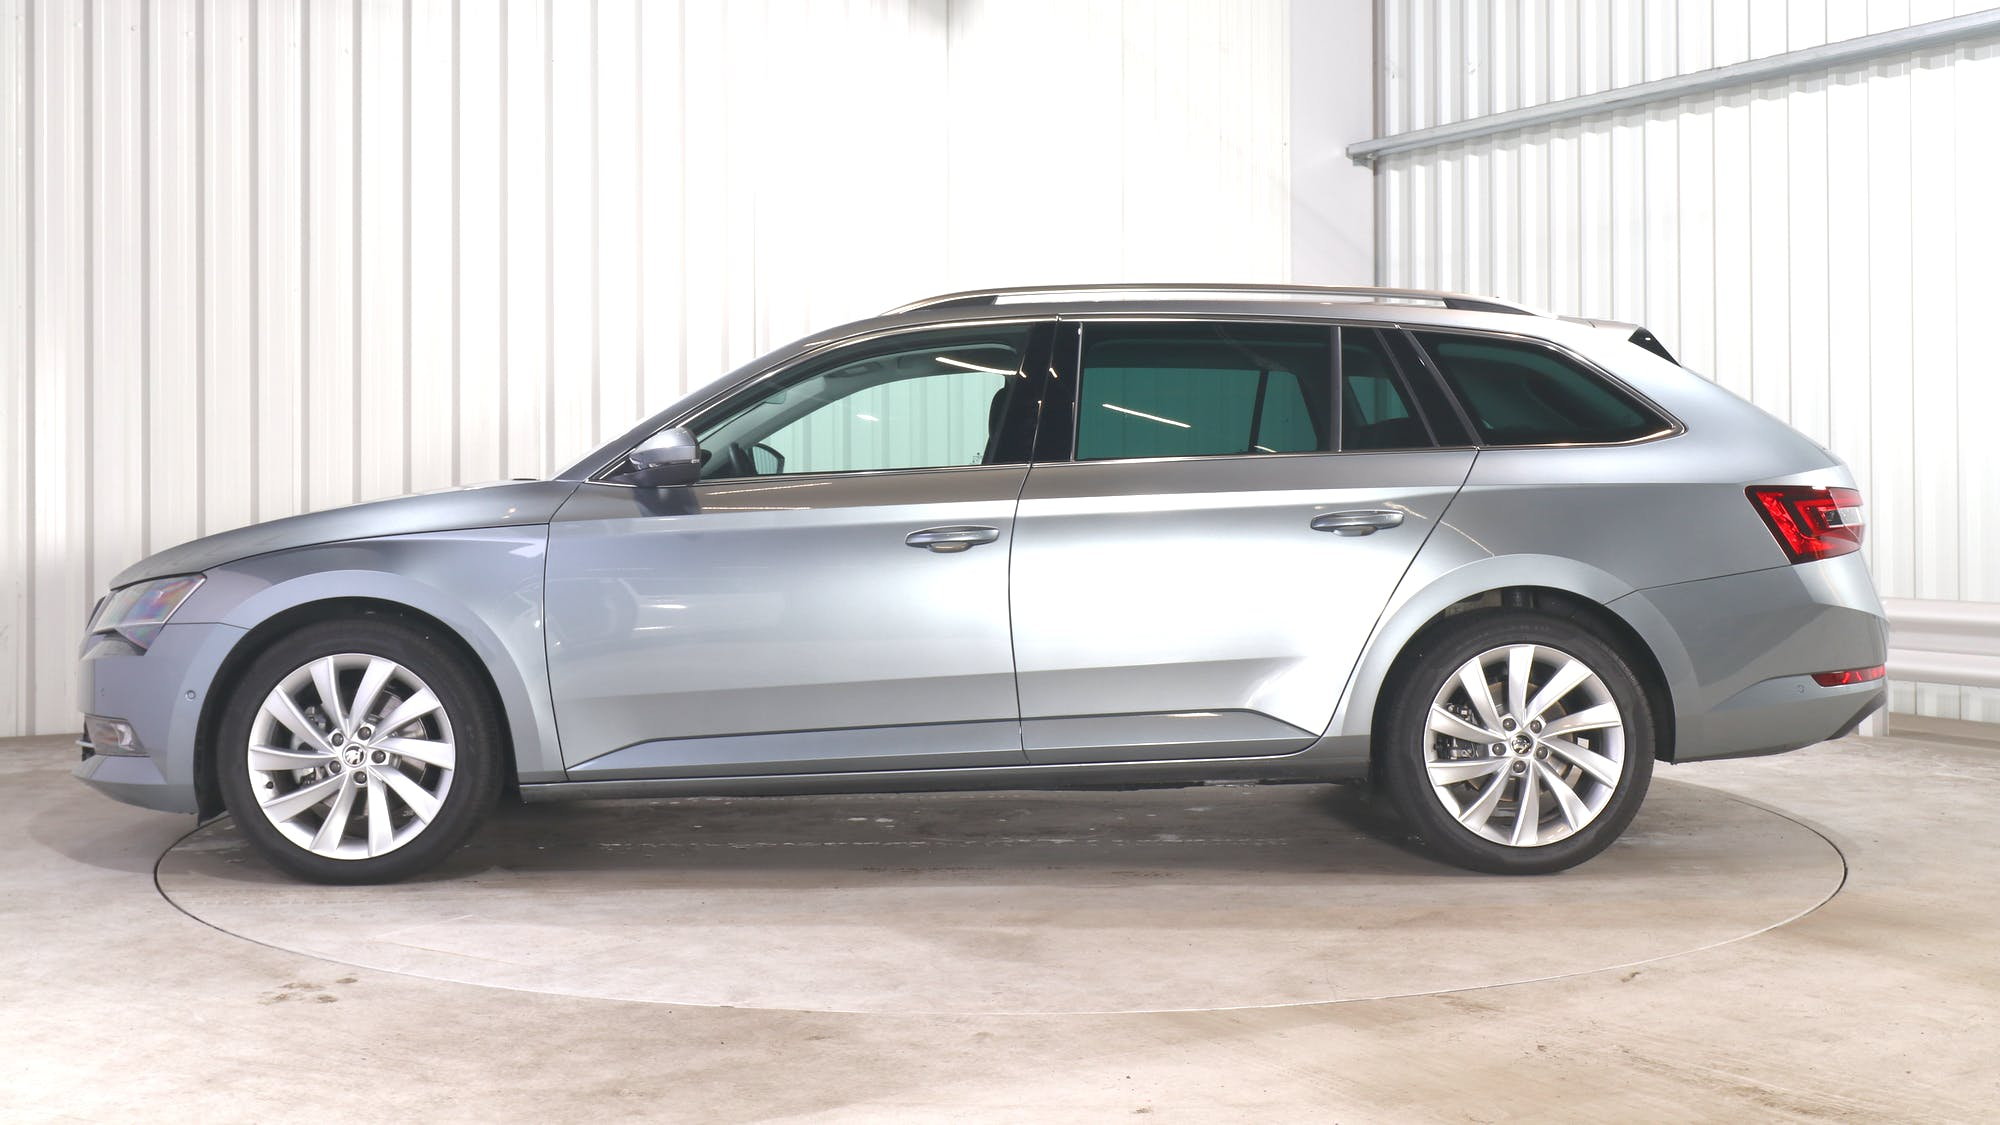 SKODA SUPERB COMBI leasing exterior 2